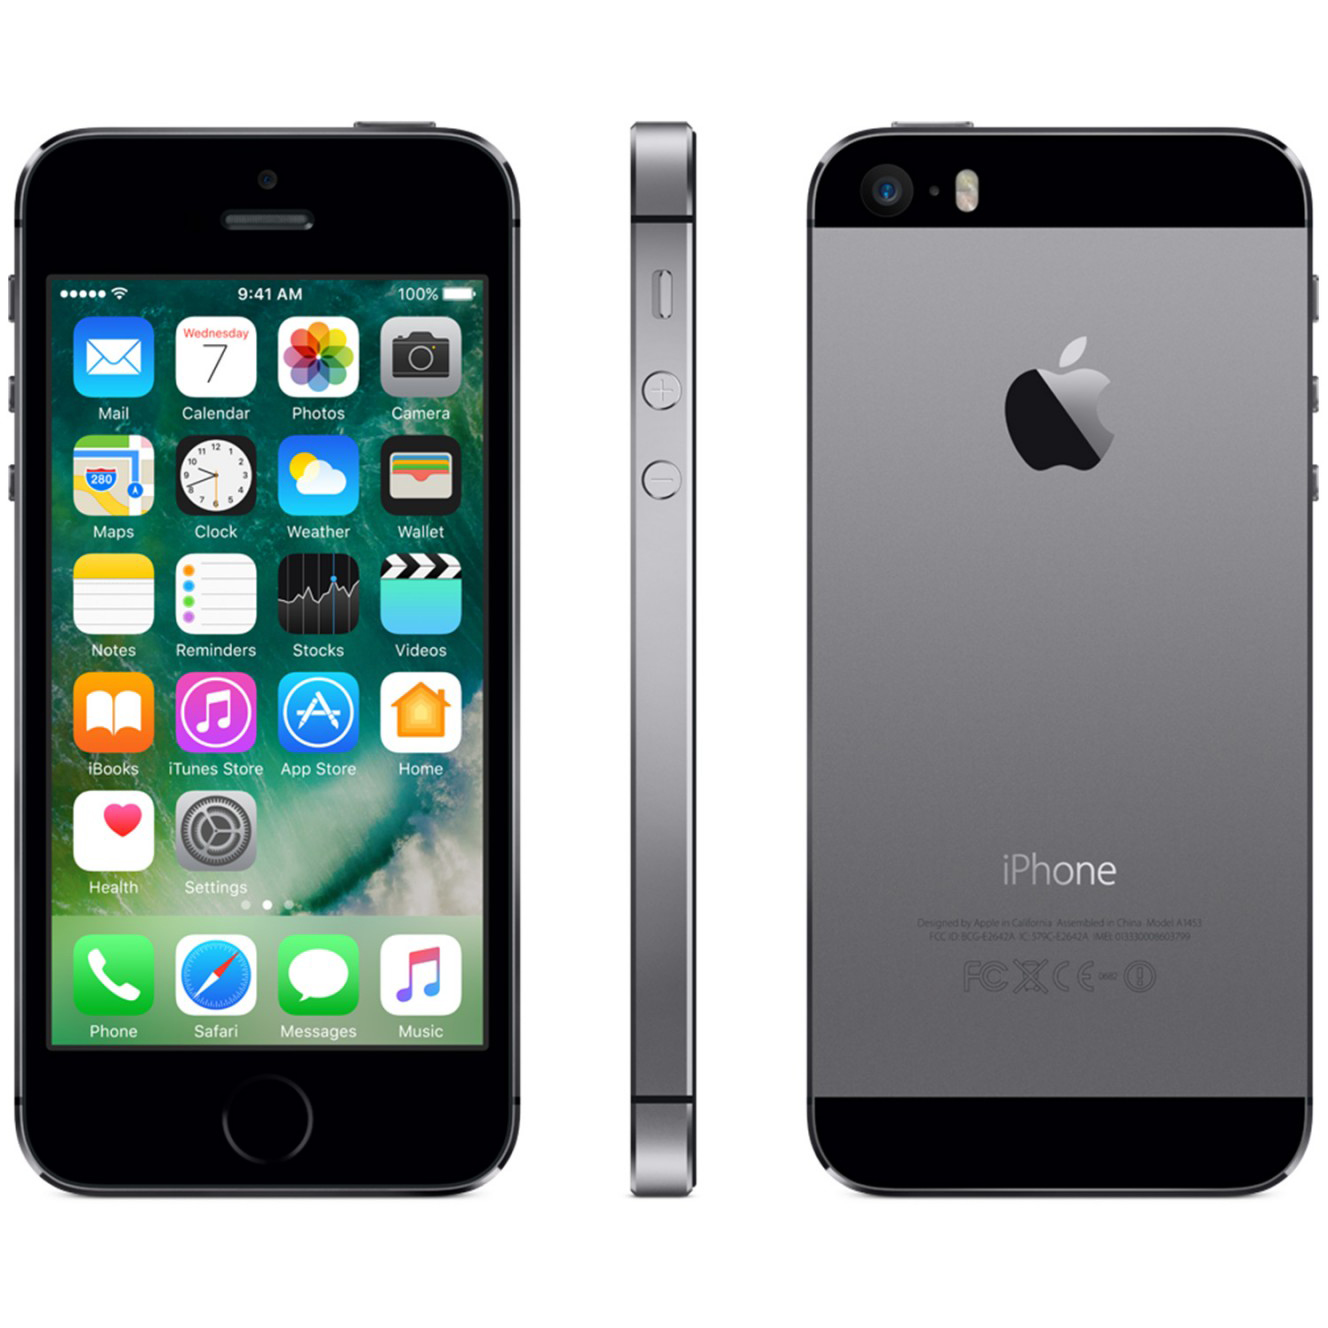 space grey iphone 5s apple iphone 5s 16gb space gray handys apple iphone 5s 4126